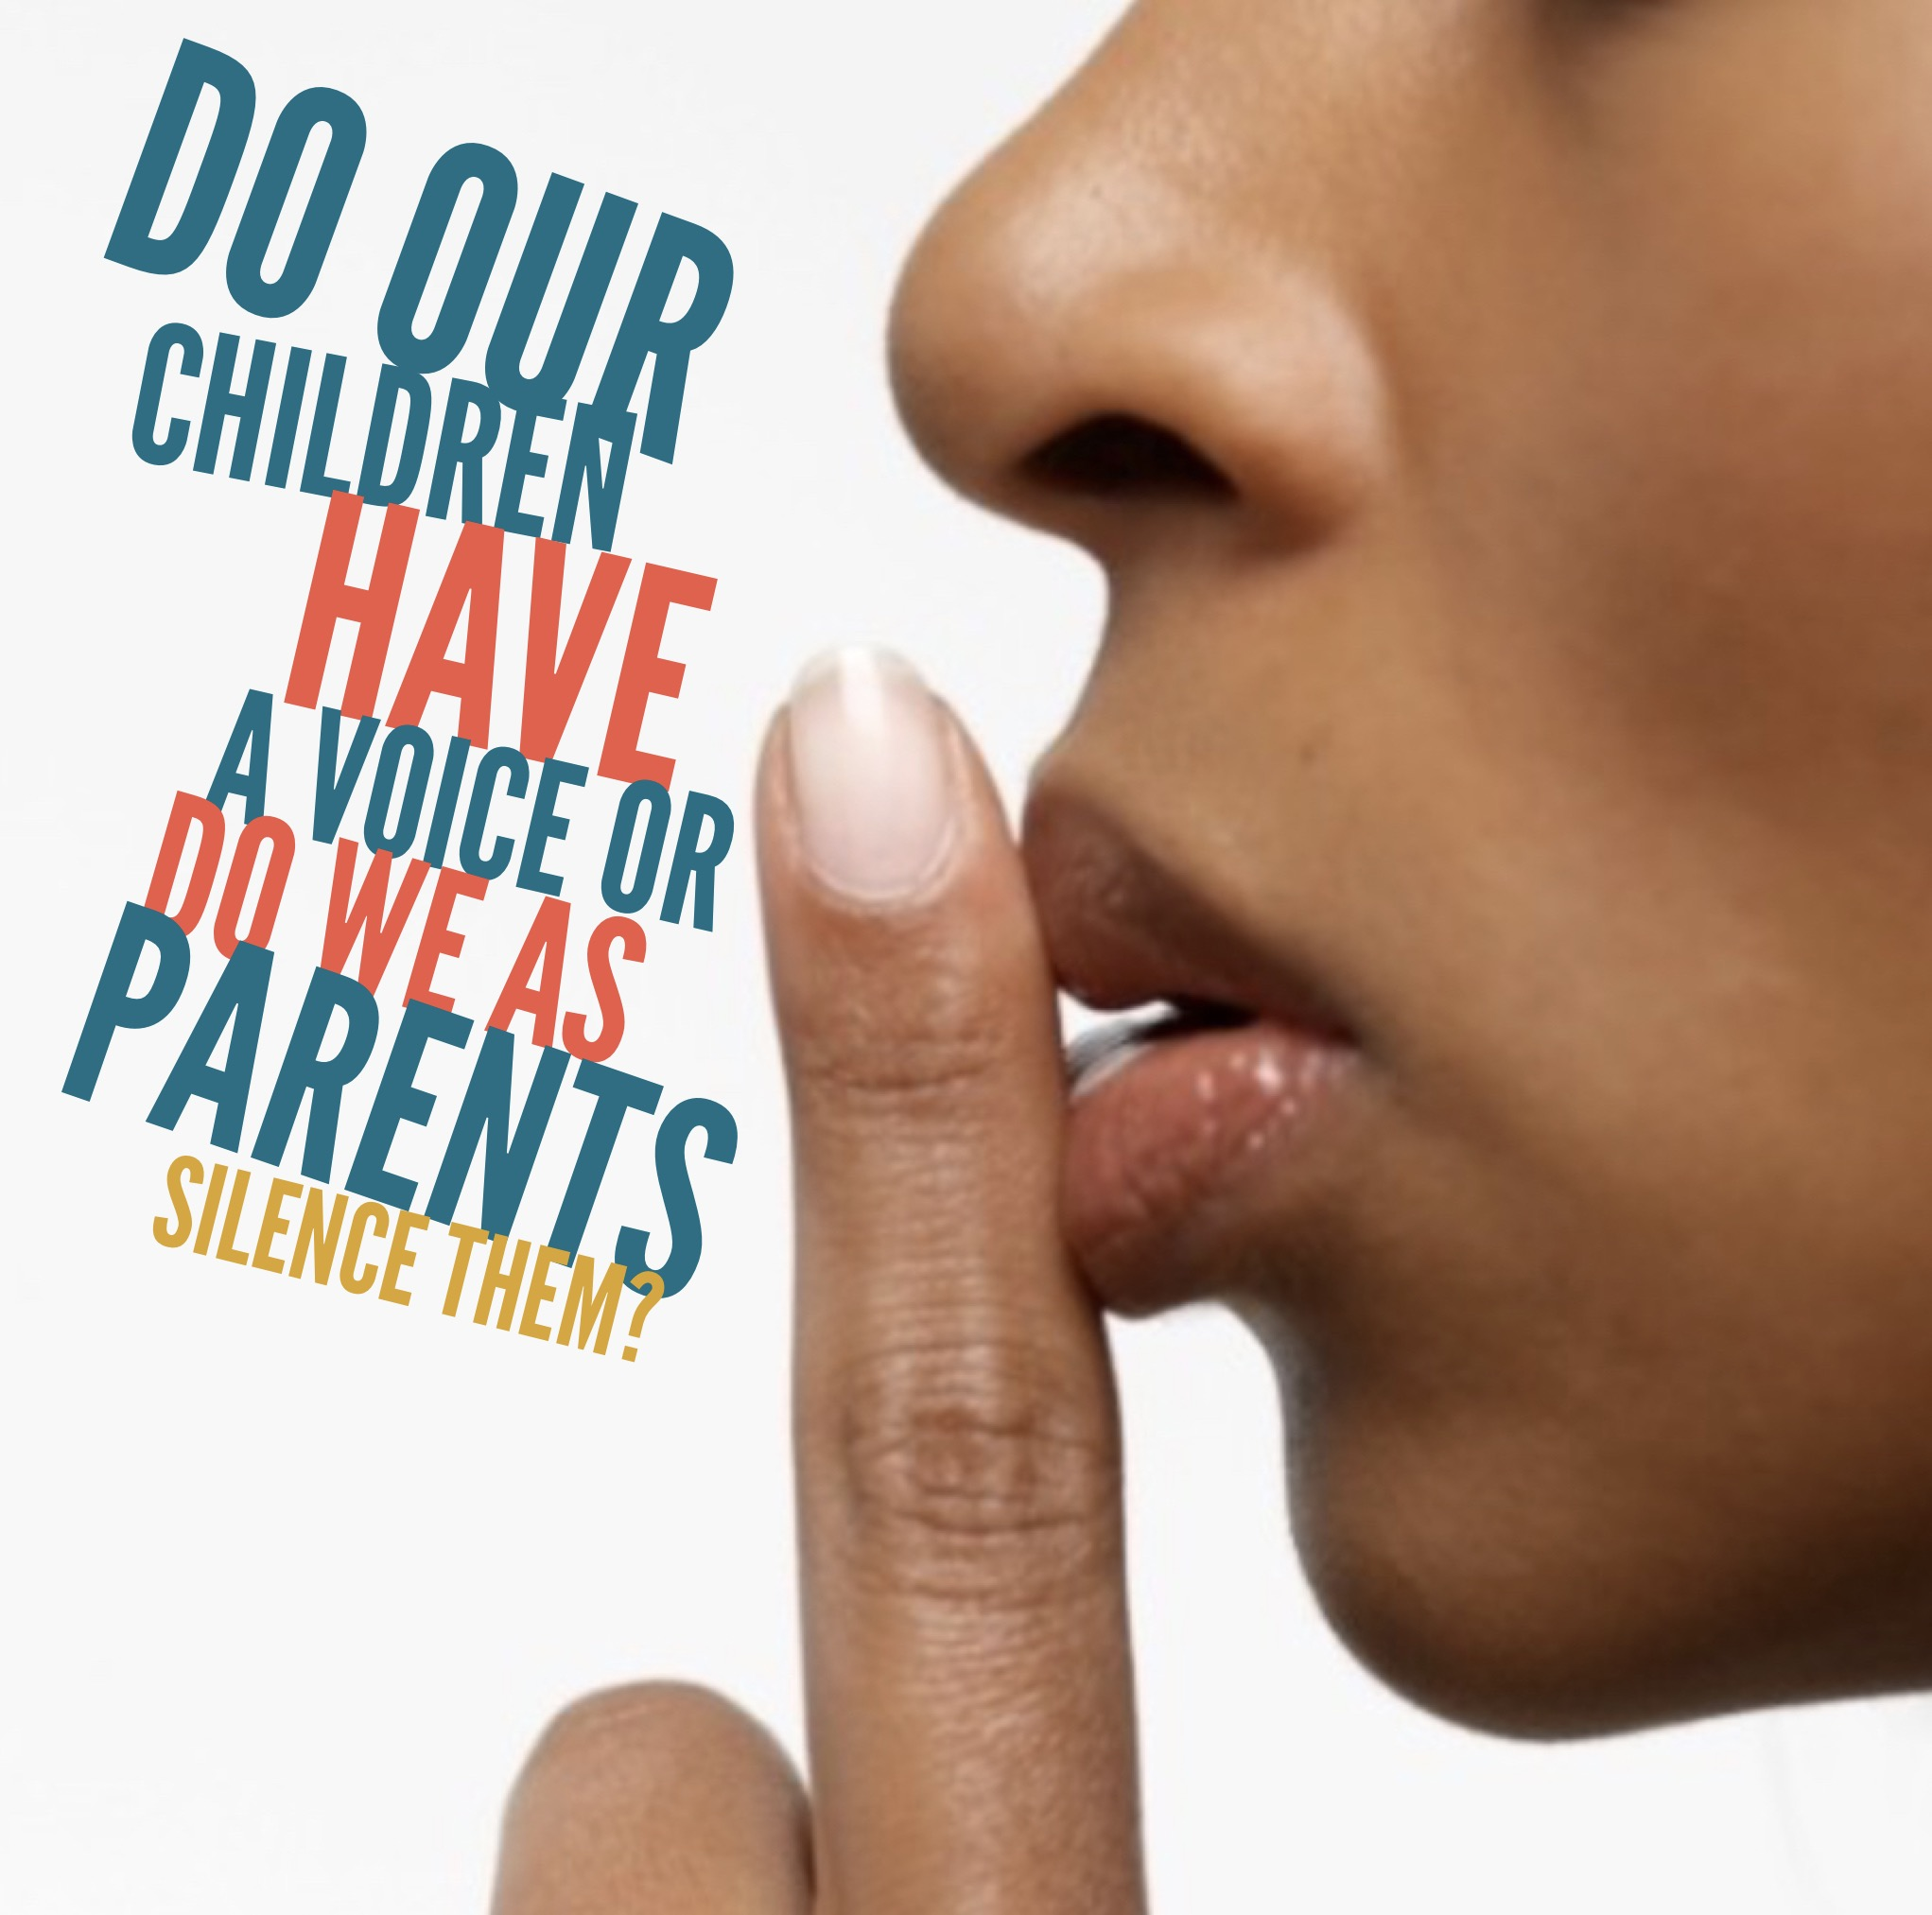 Do our children have a voice or do we as parents silence them?